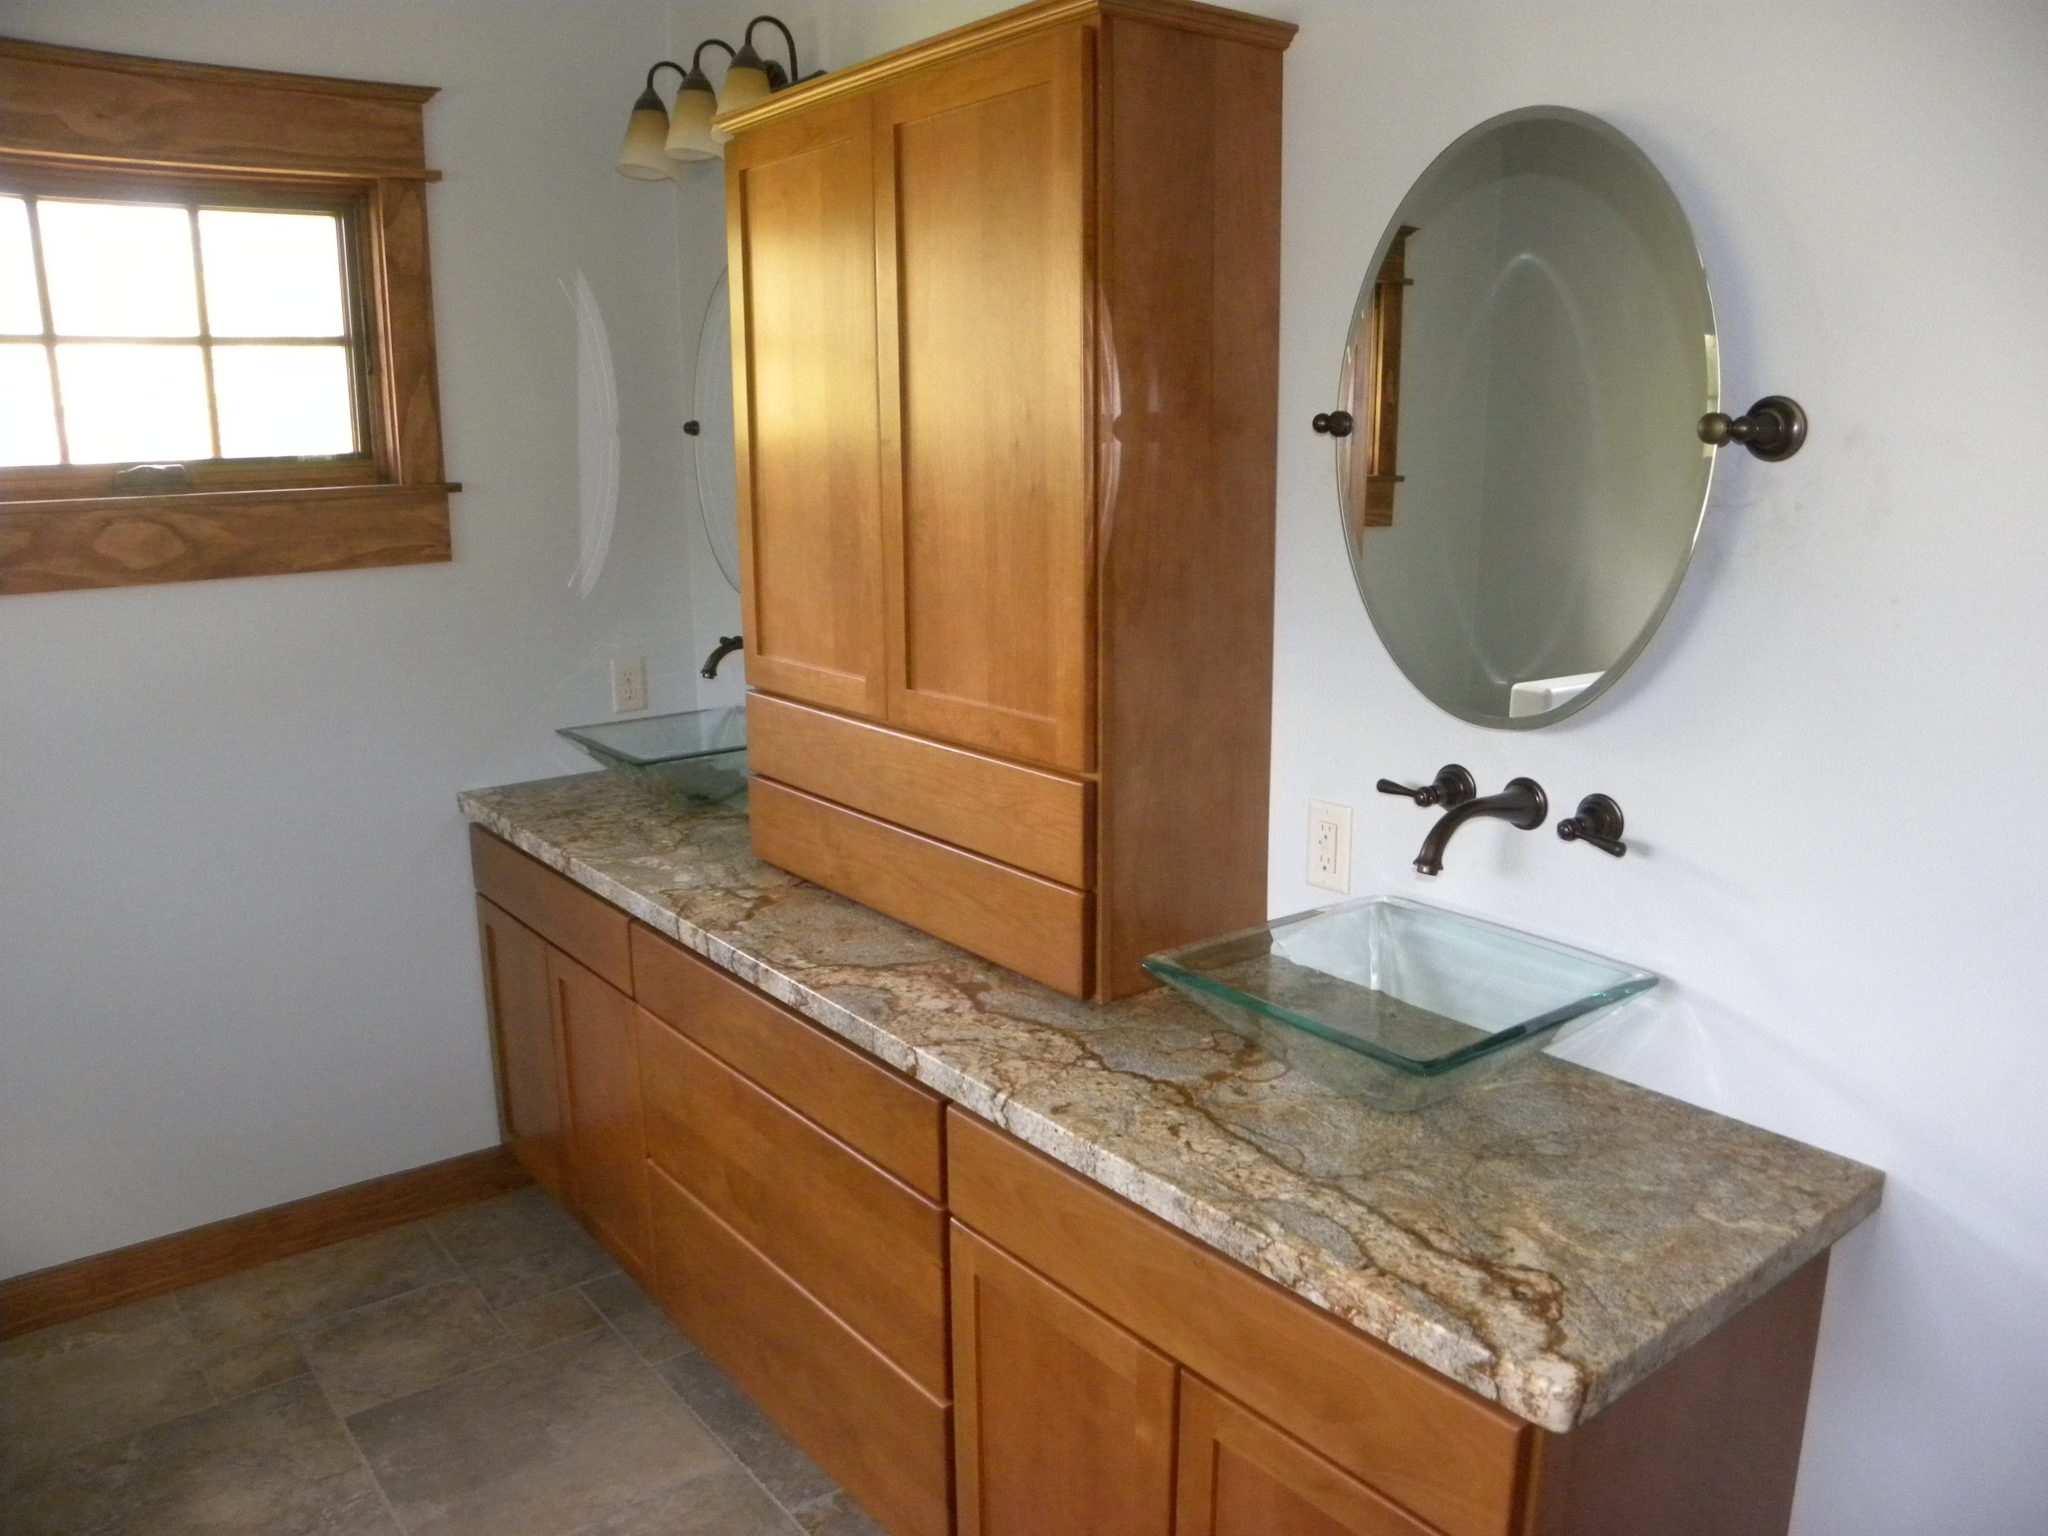 Interior shot of a newly remodeled bathroom with wooden cabinets and granite countertops